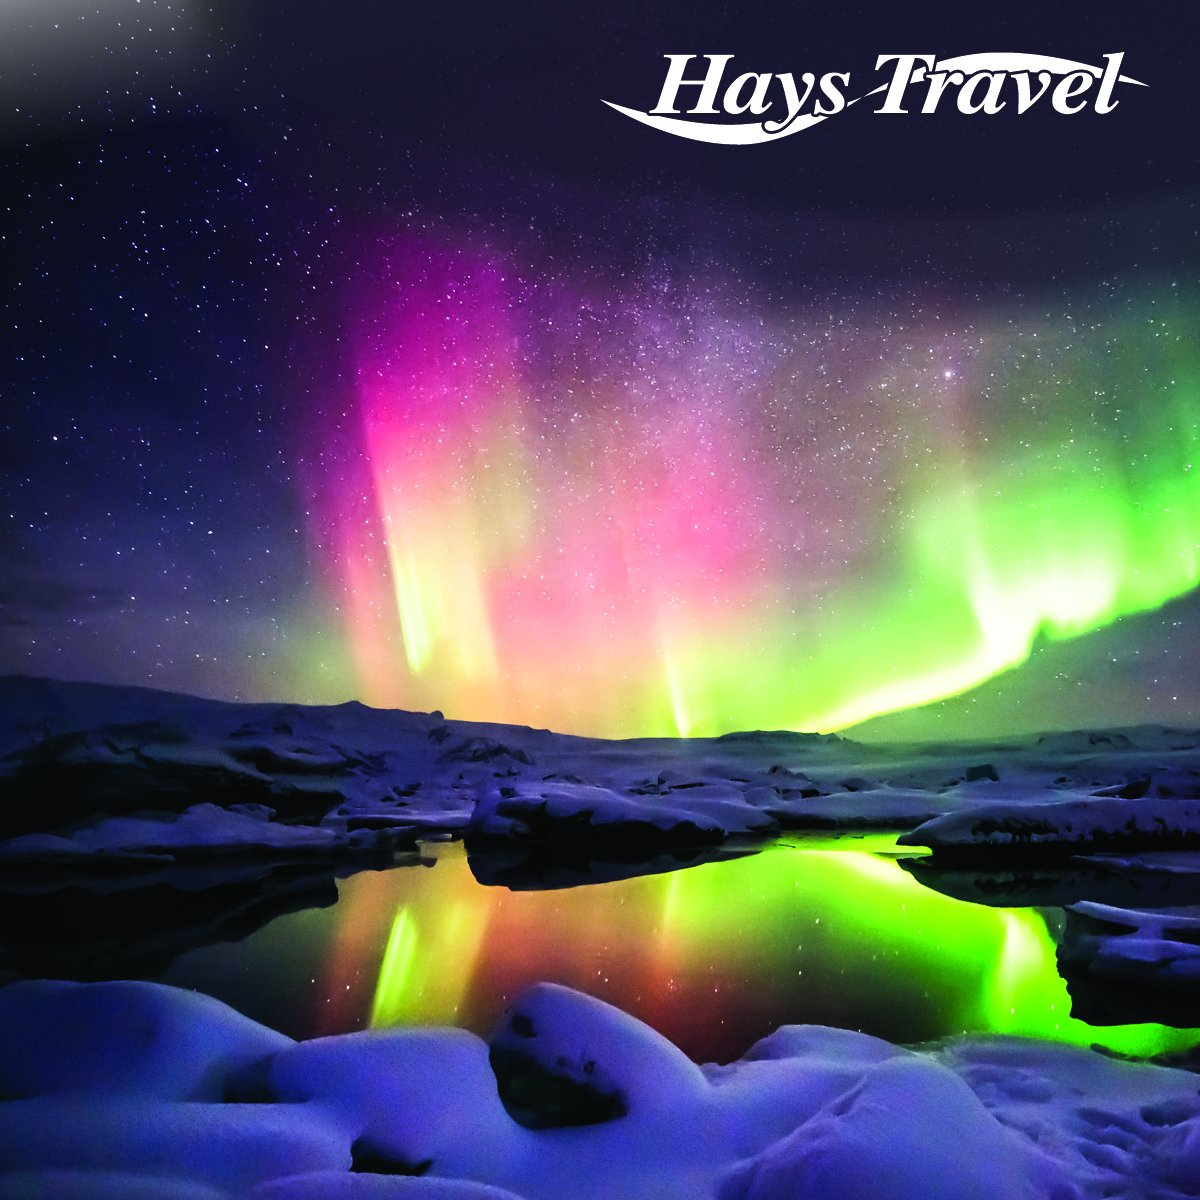 hays travel - photo #22